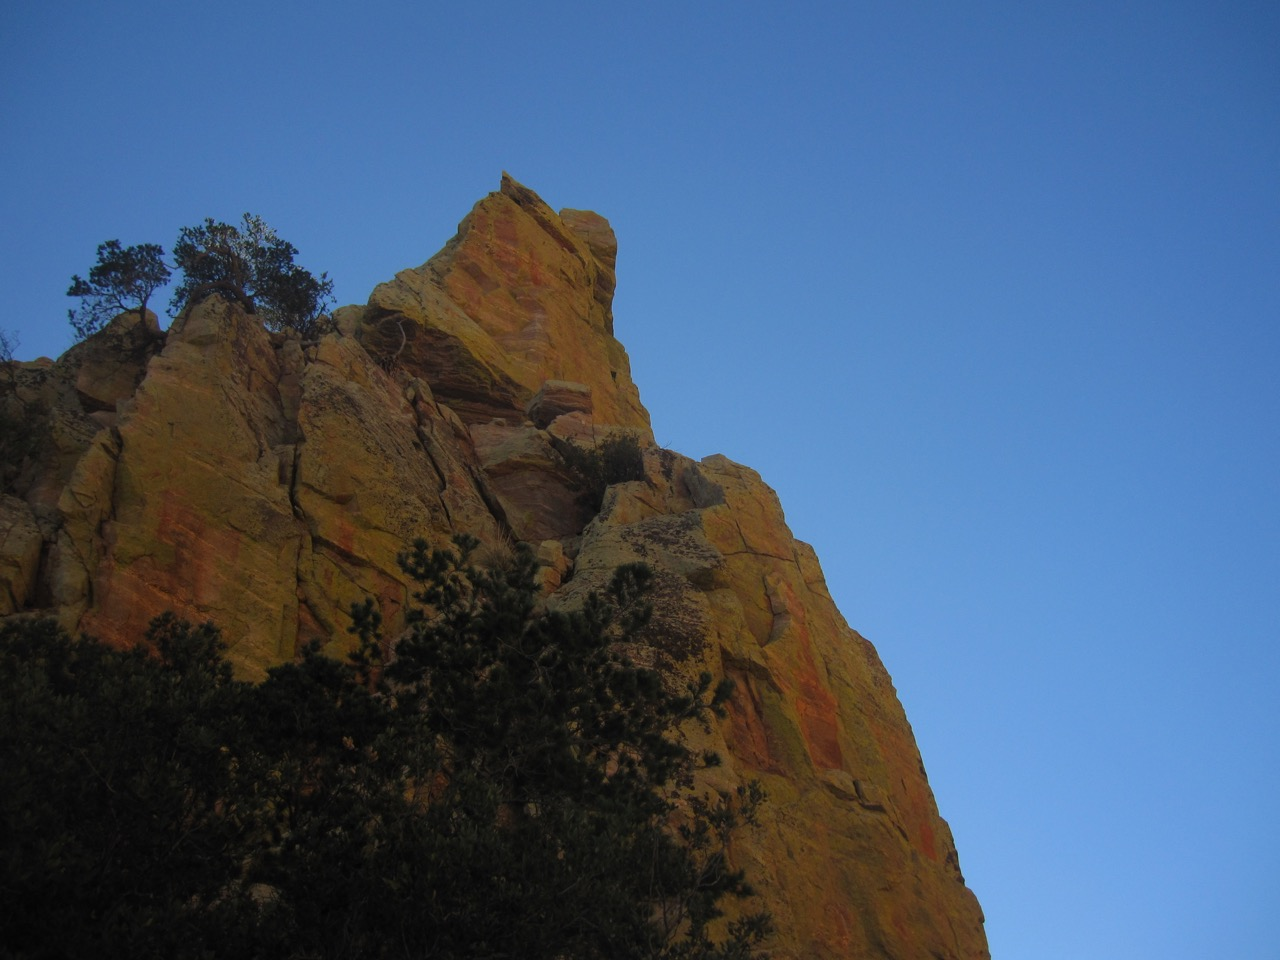 Looking up the northwest face of Finger Rock from the saddle at the base of the route.